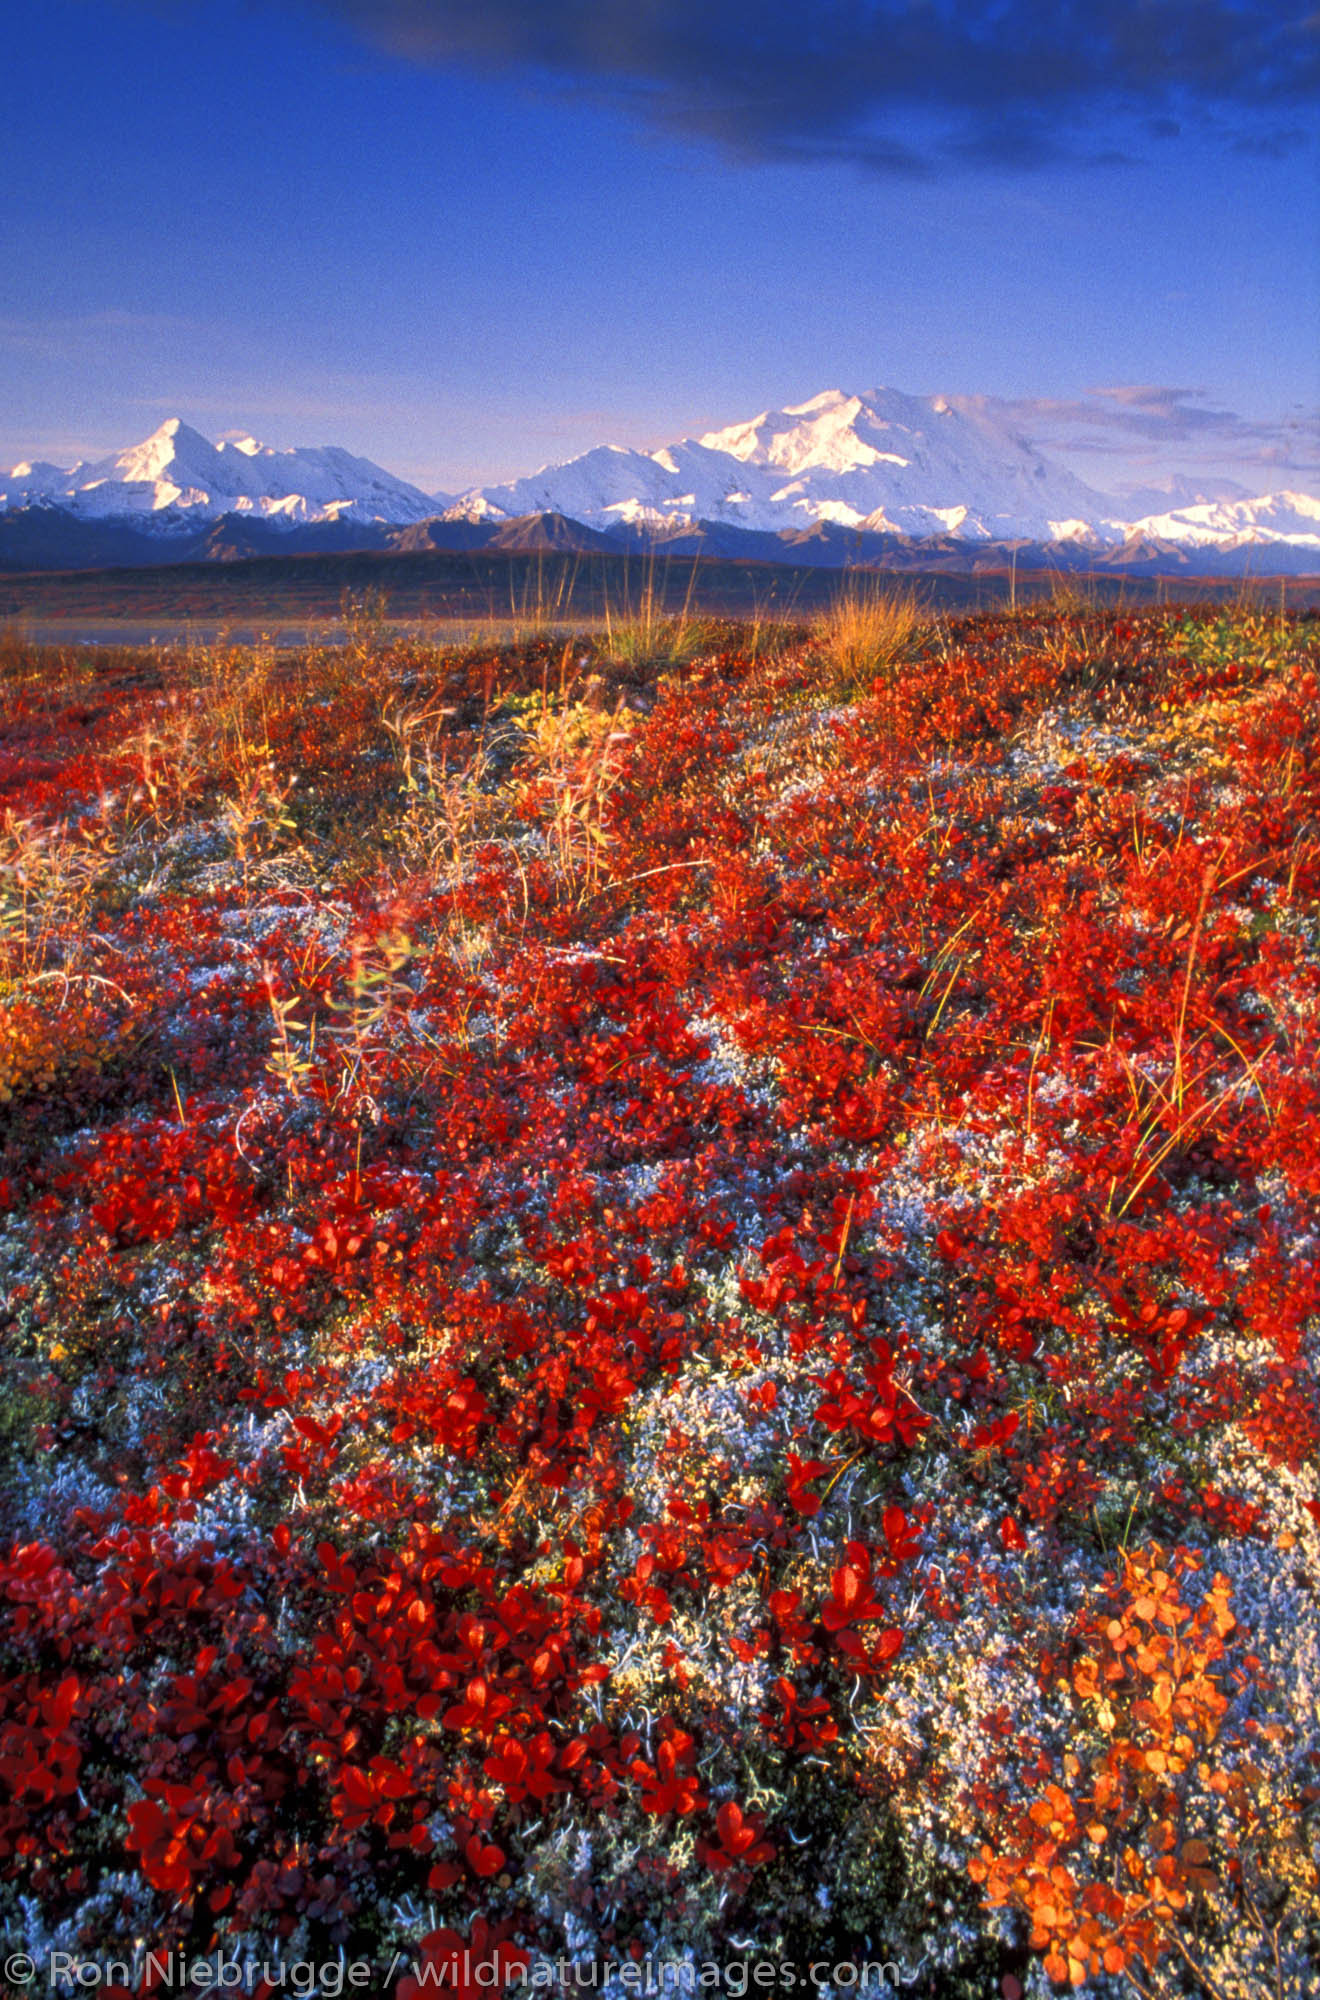 Alpine Bearberry turns red in fall as Mt. McKinley looms in the background.  Denali National Park, Alaska.